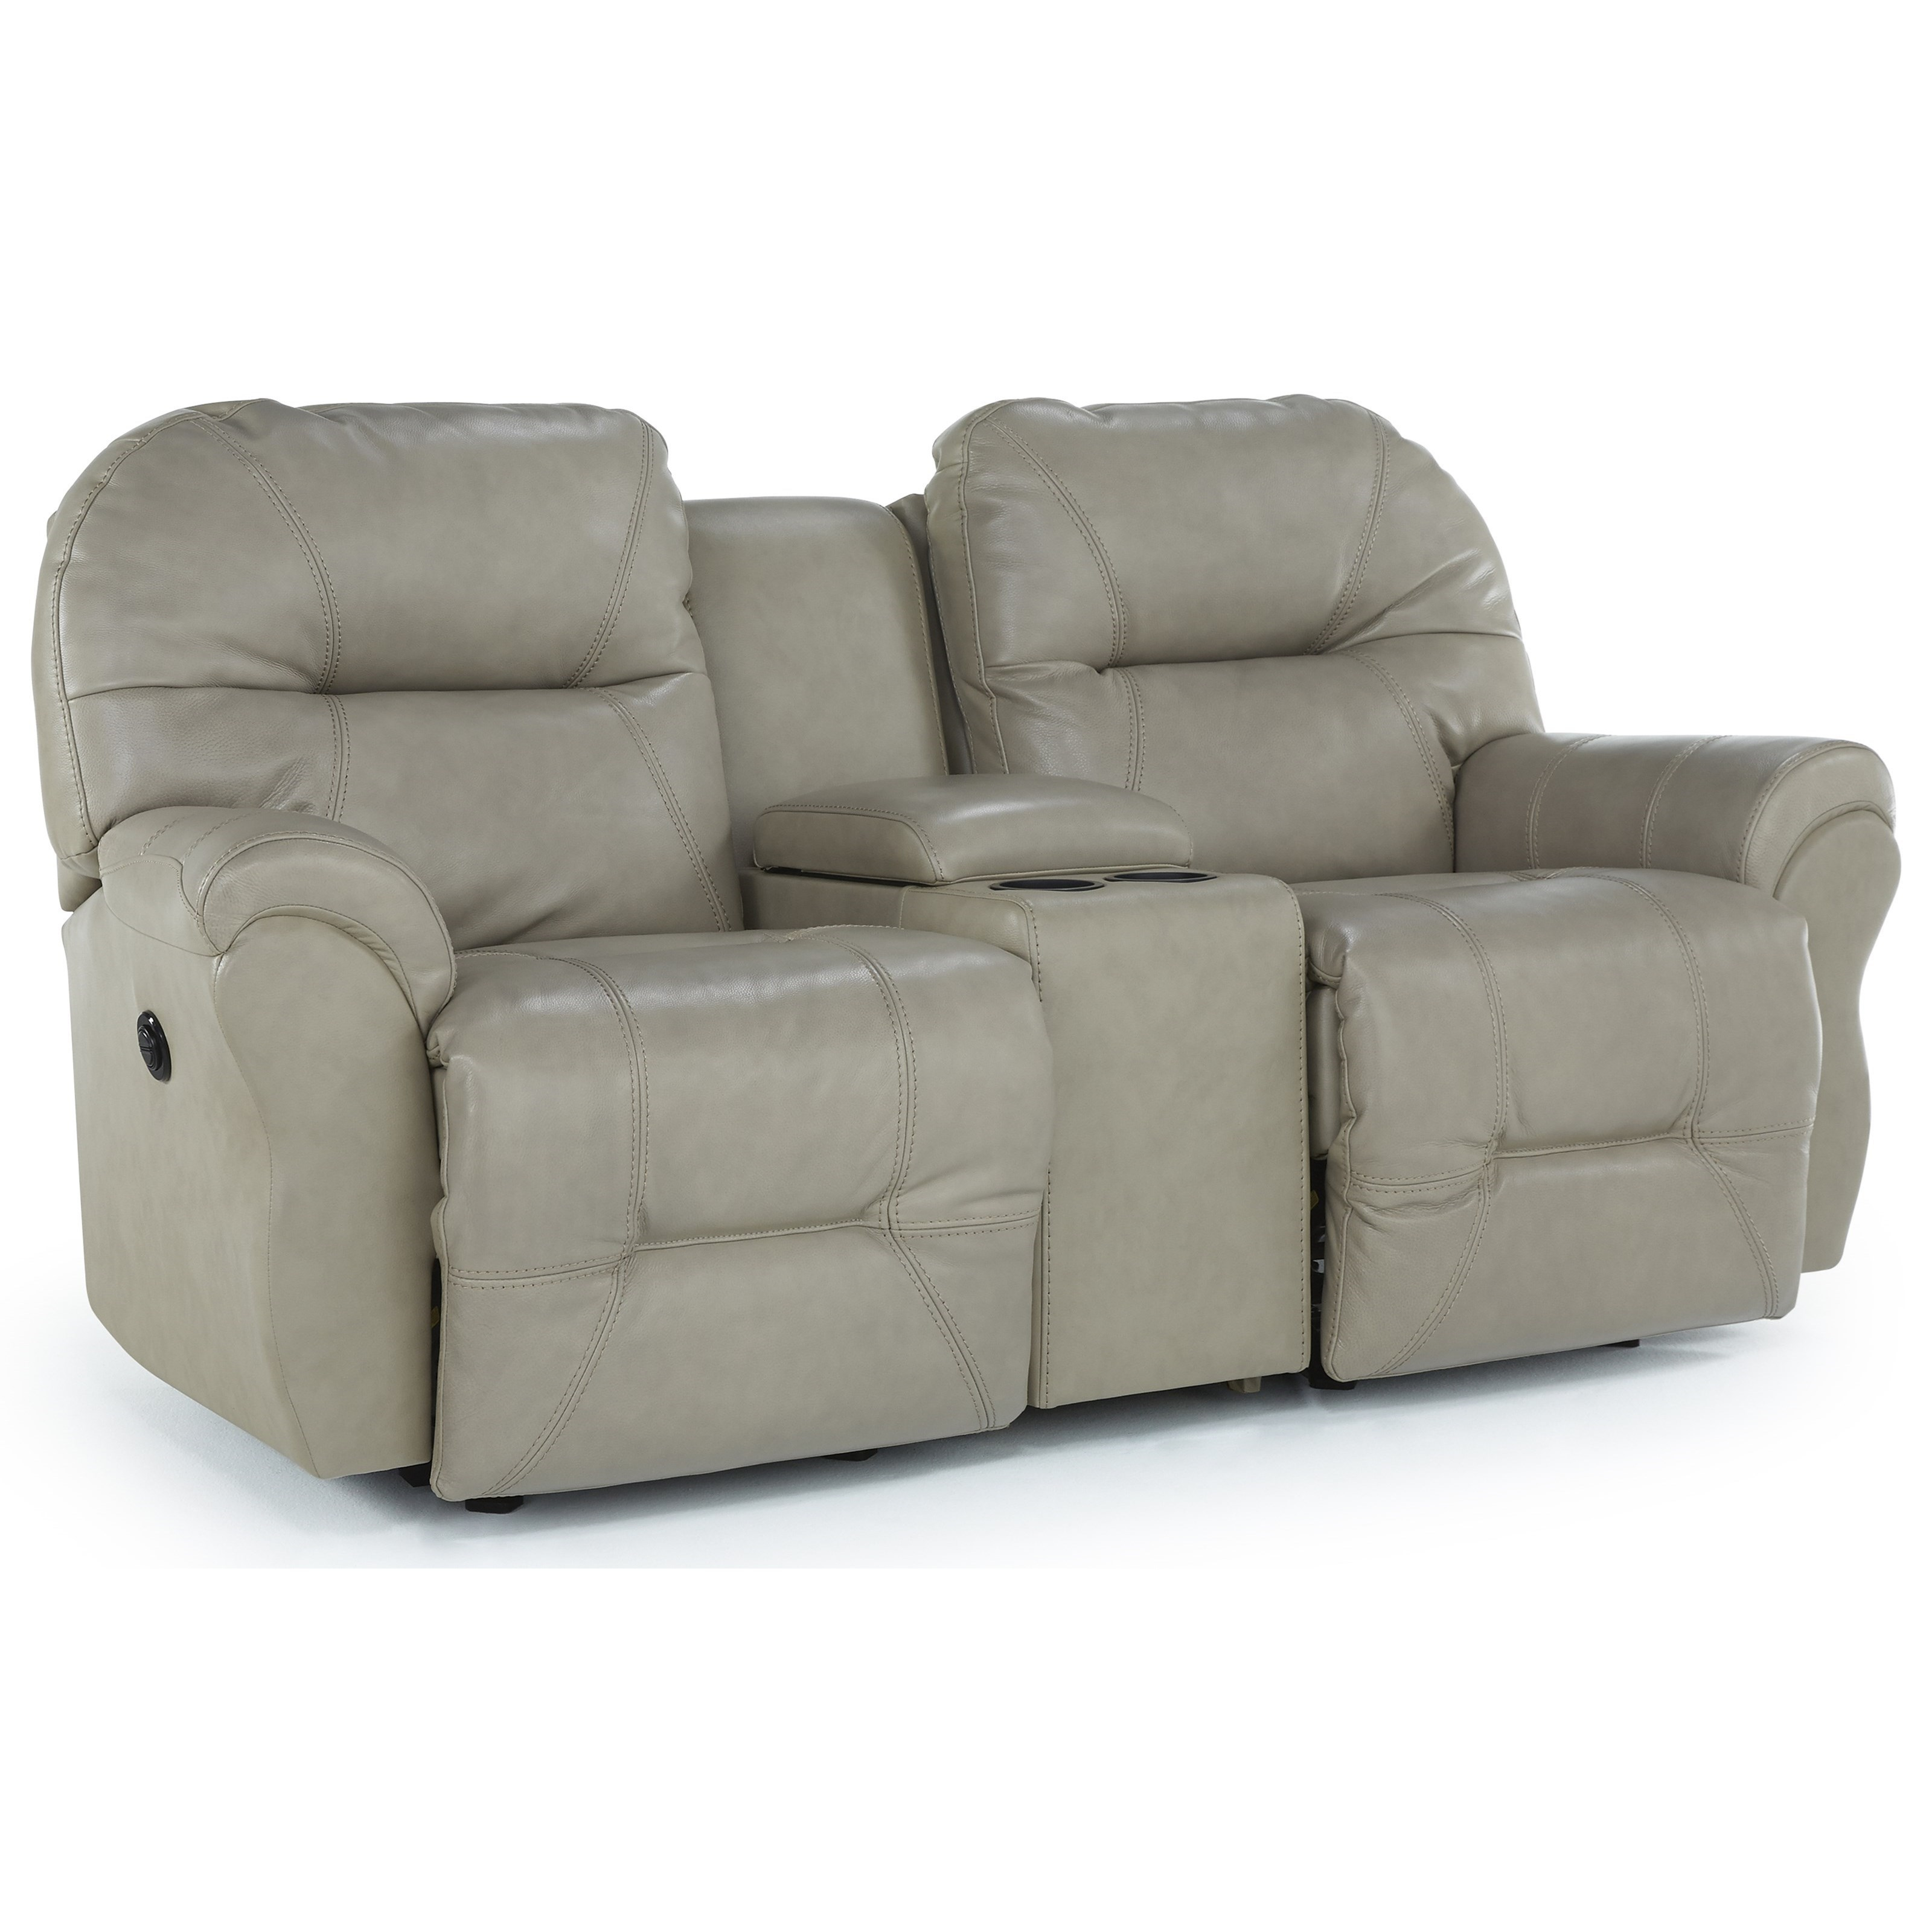 Best Home Furnishings Bodie Space Saver Reclining Loveseat With Storage Console Sheely S Furniture Appliance Reclining Loveseats